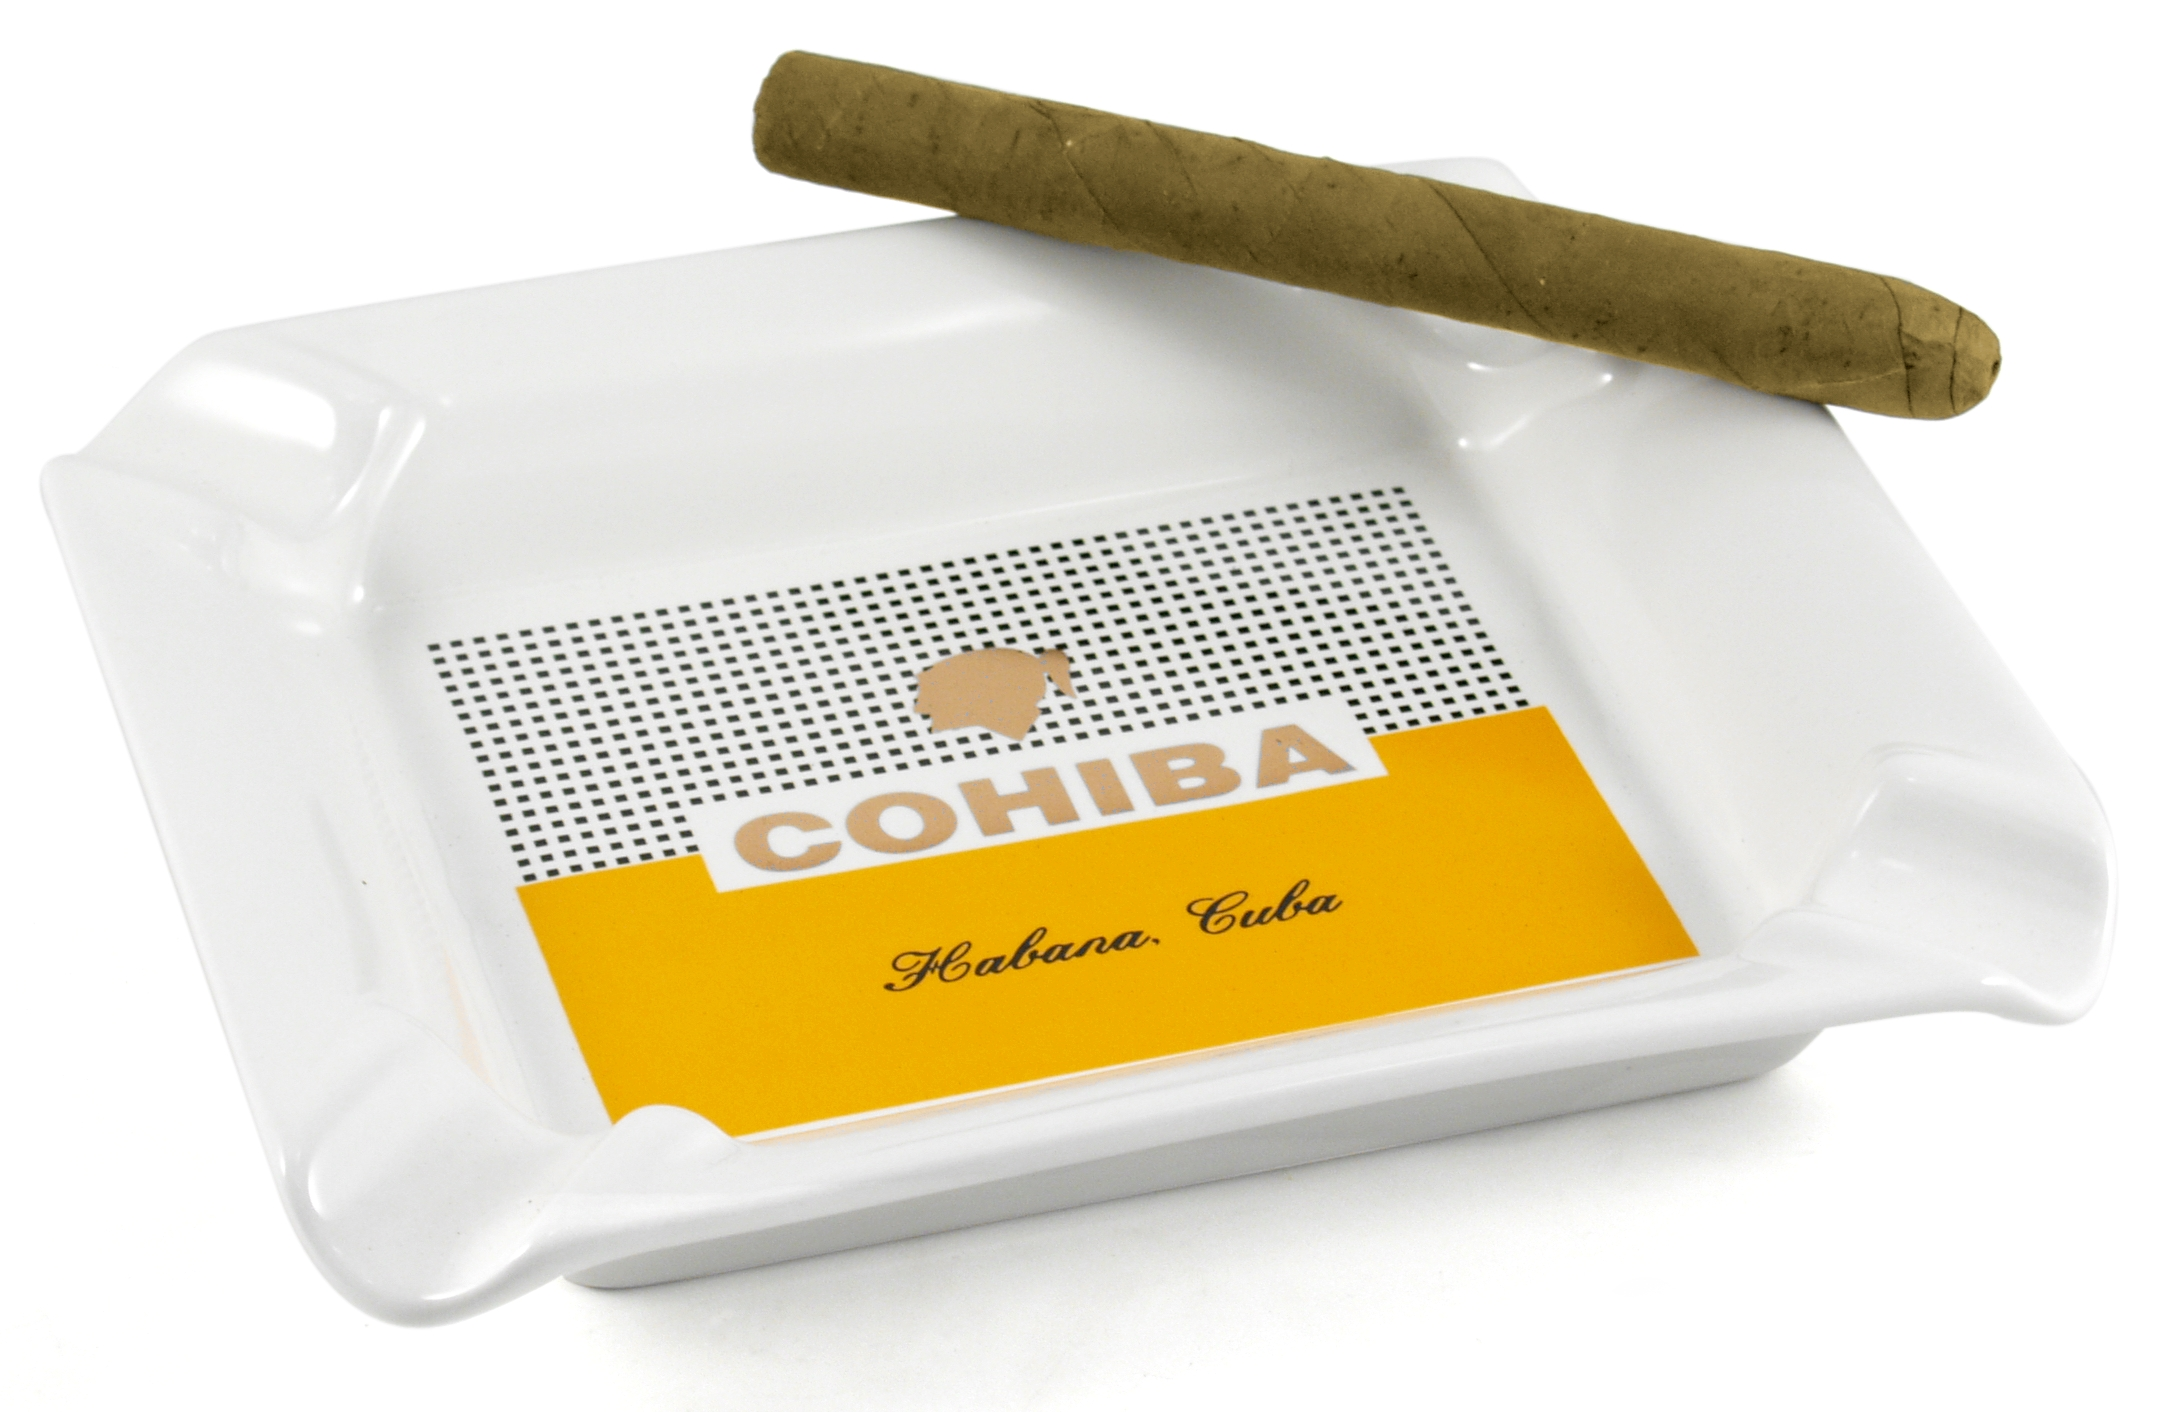 Cohiba 4 Cigar Ashtray Cuban Habana Cuba logo